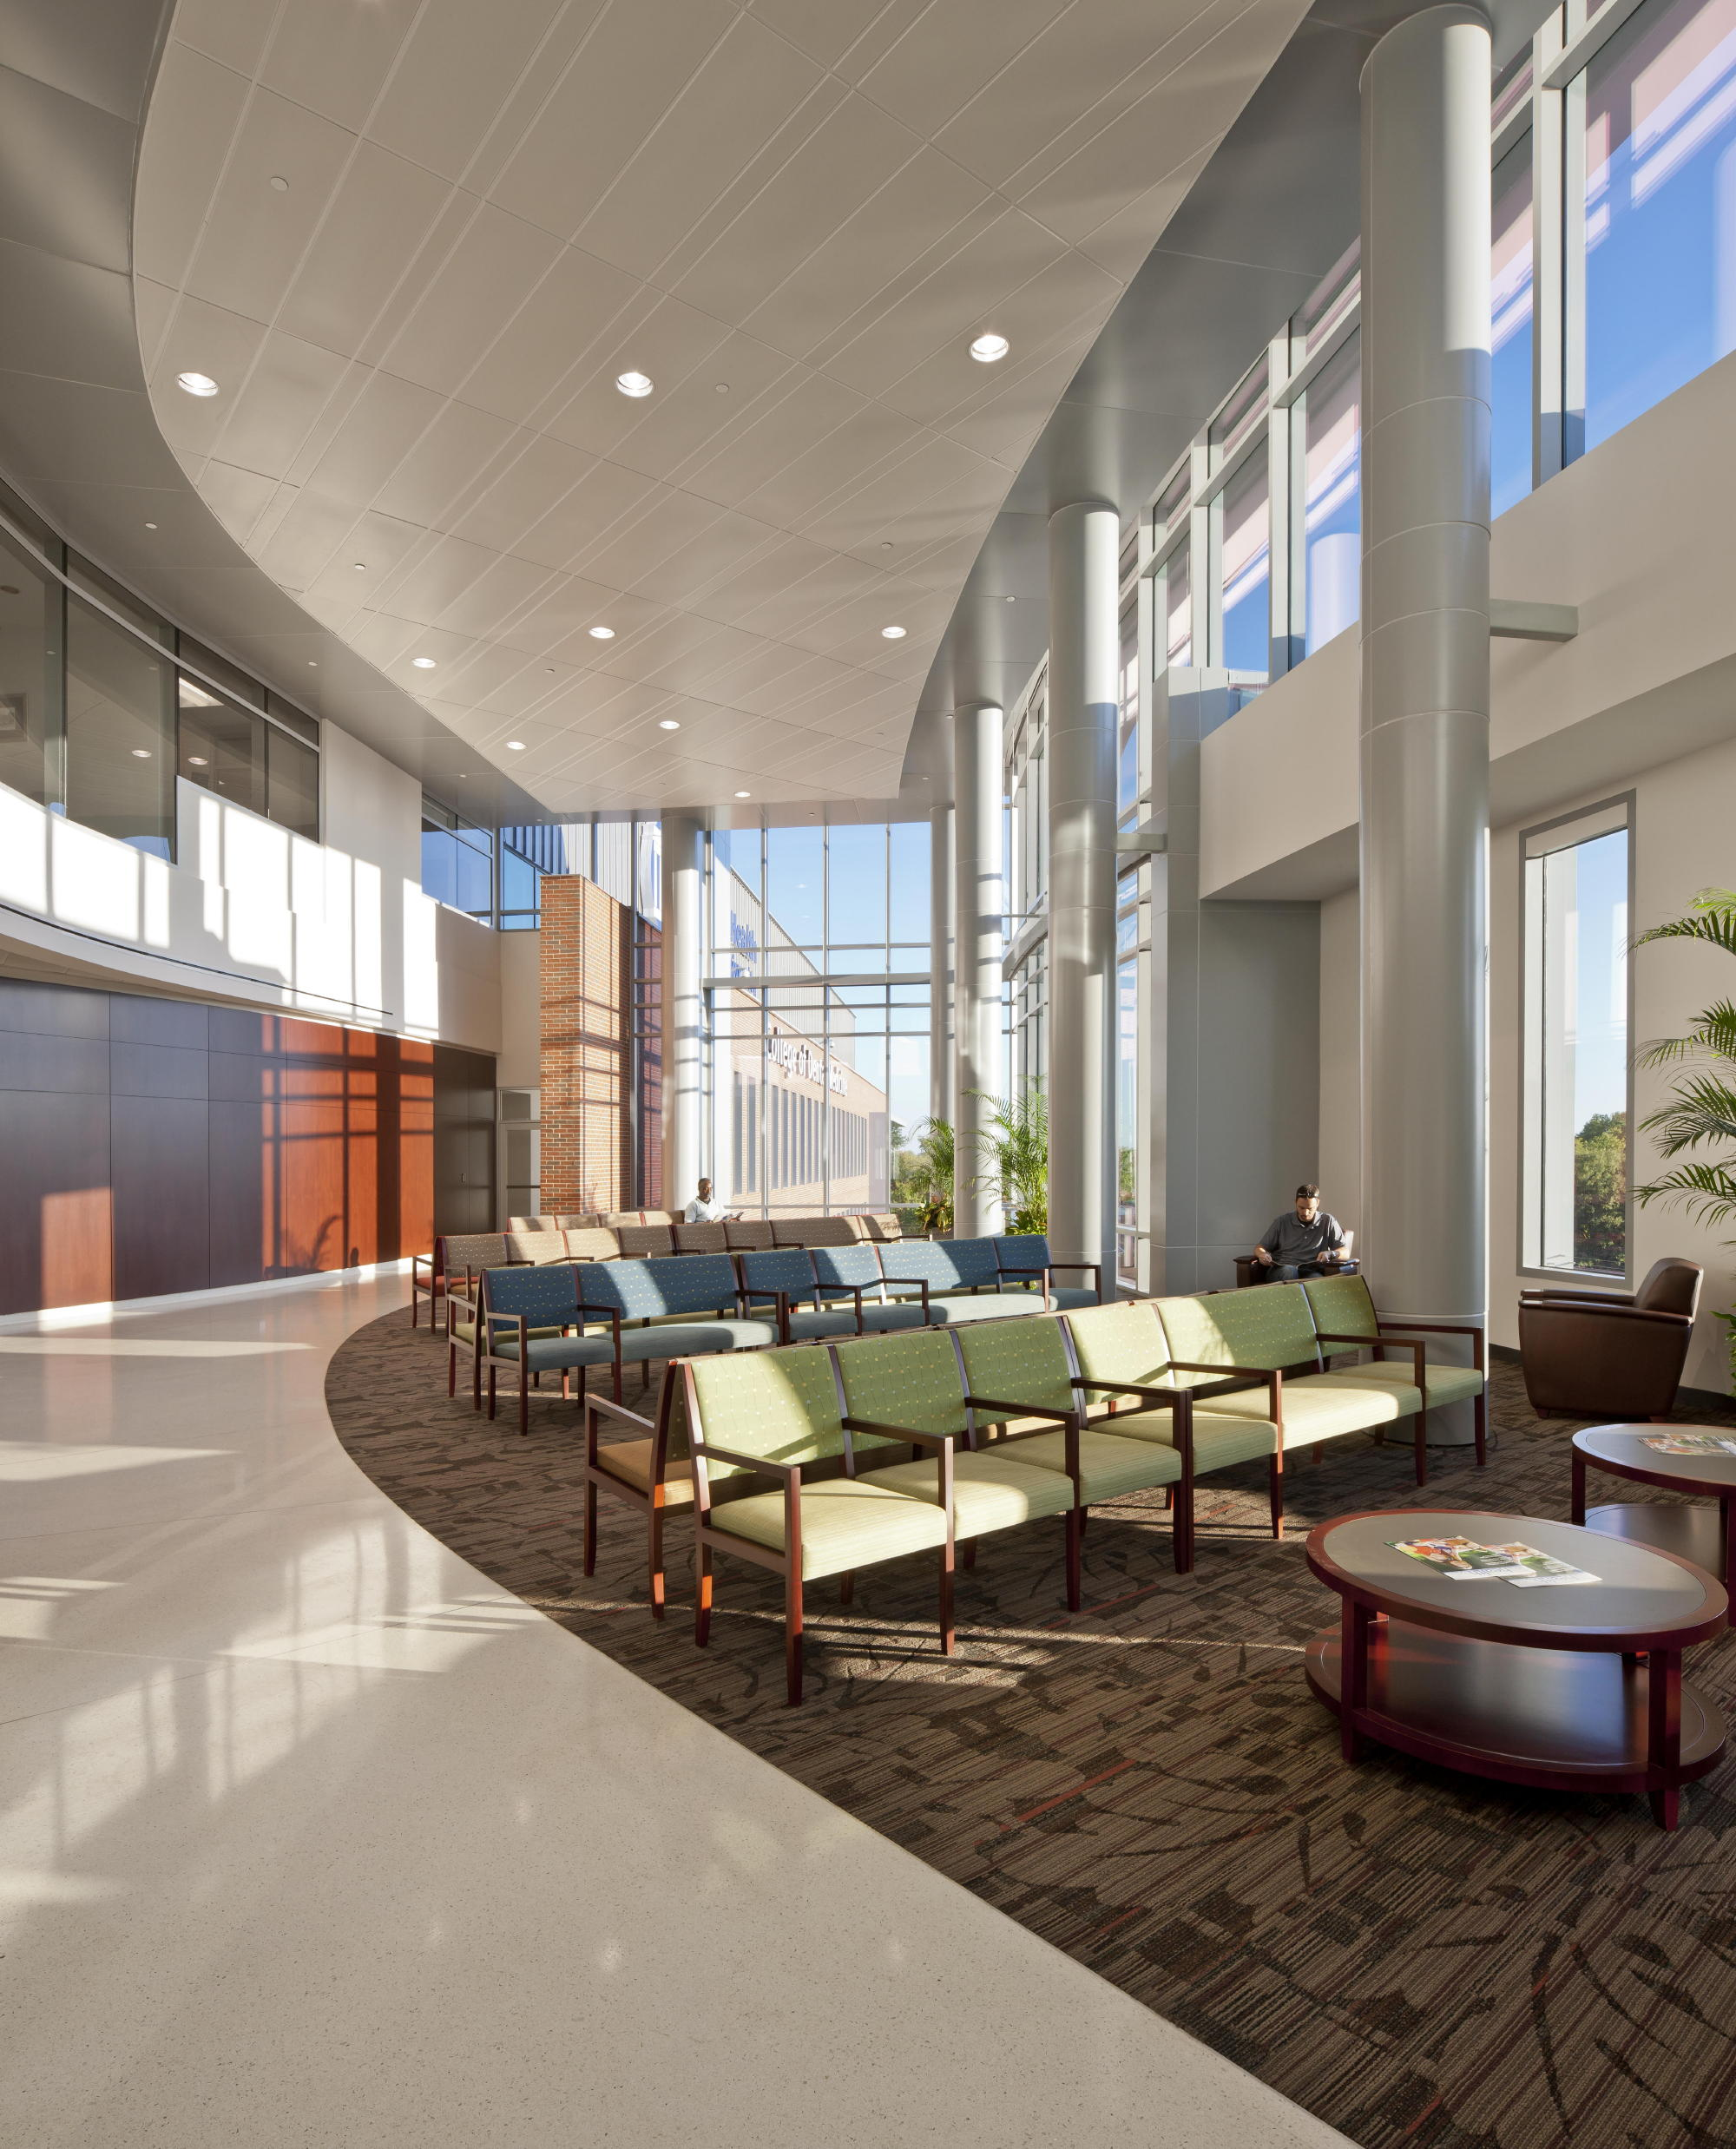 The CDM's generous glazing brings natural light to nearly every area of the building. c Jonathan Hillyer / Atlanta